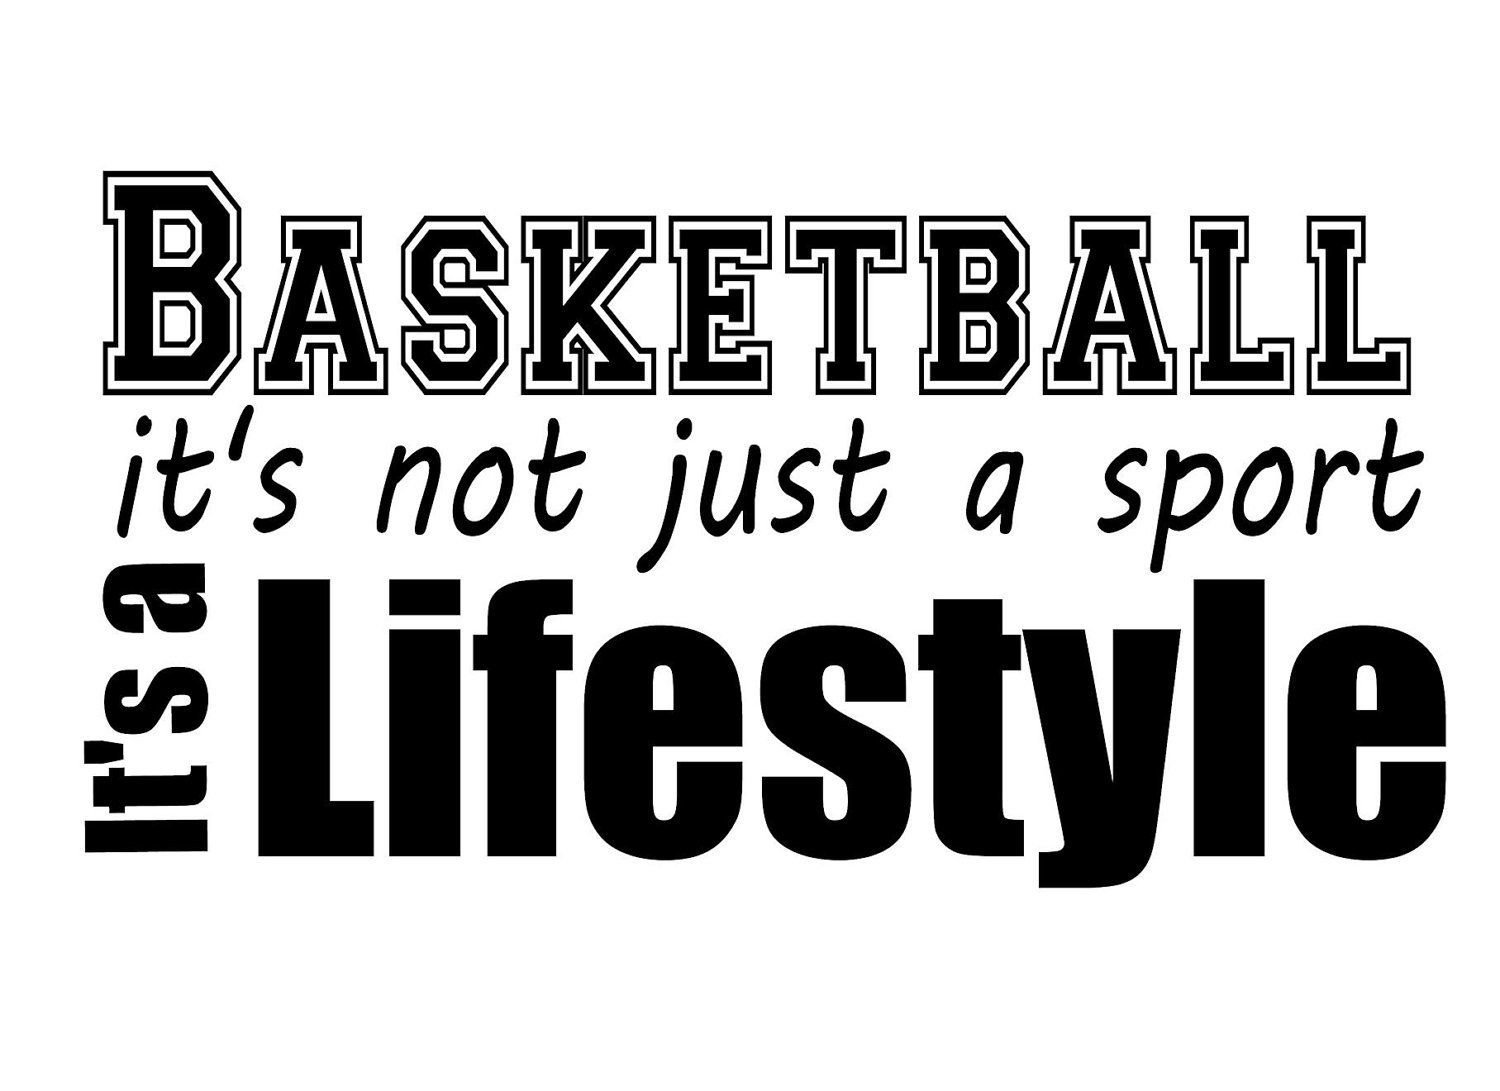 Pin By Danielle Vogt On Sports Basketball Quotes Basketball Basketball Funny